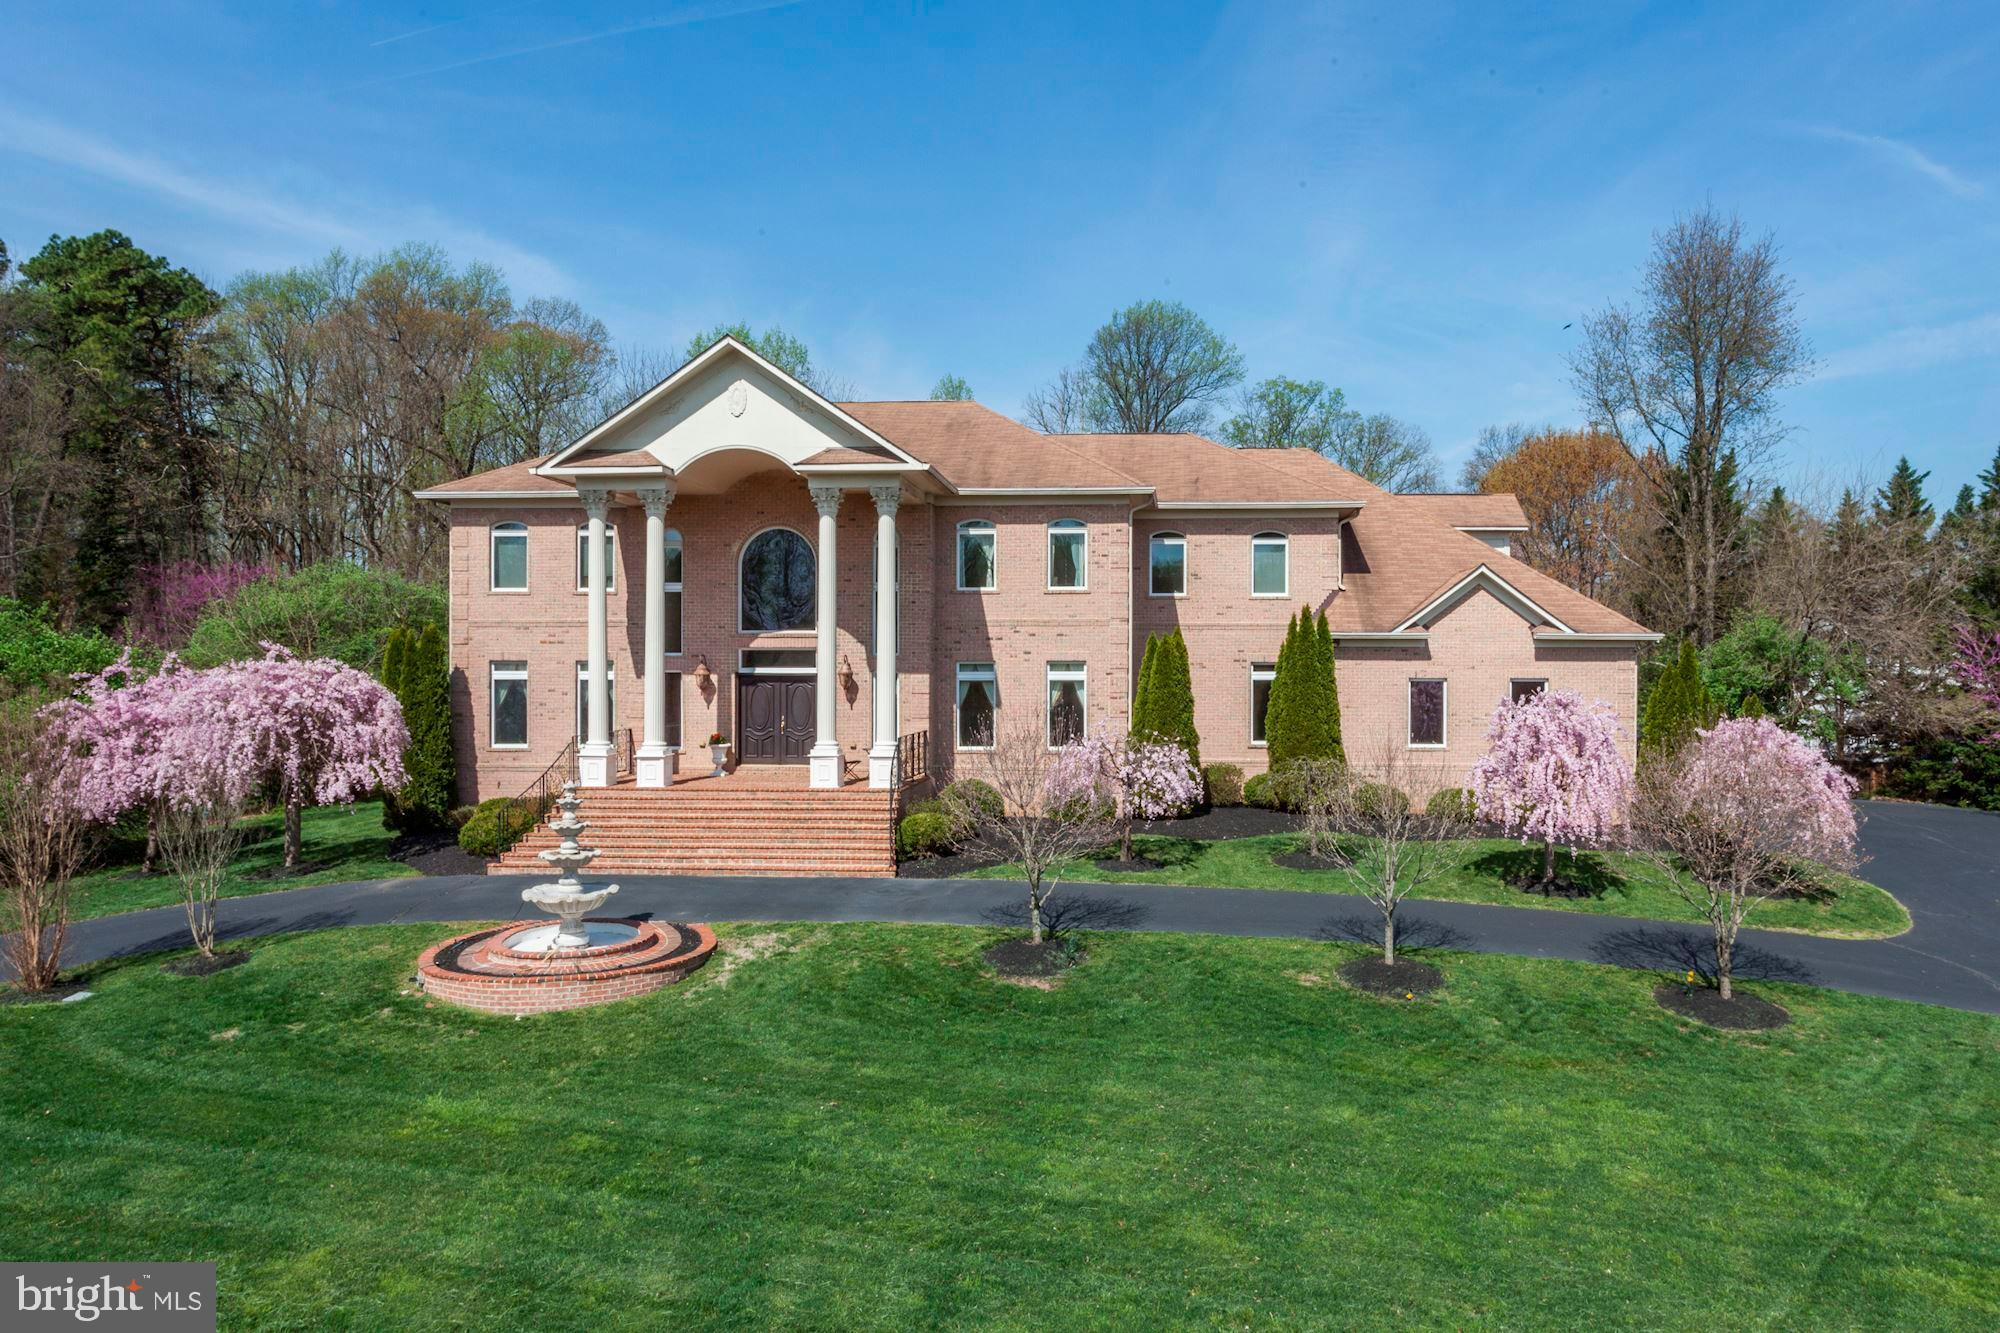 2952 BONDS RIDGE COURT, OAKTON, VA 22124